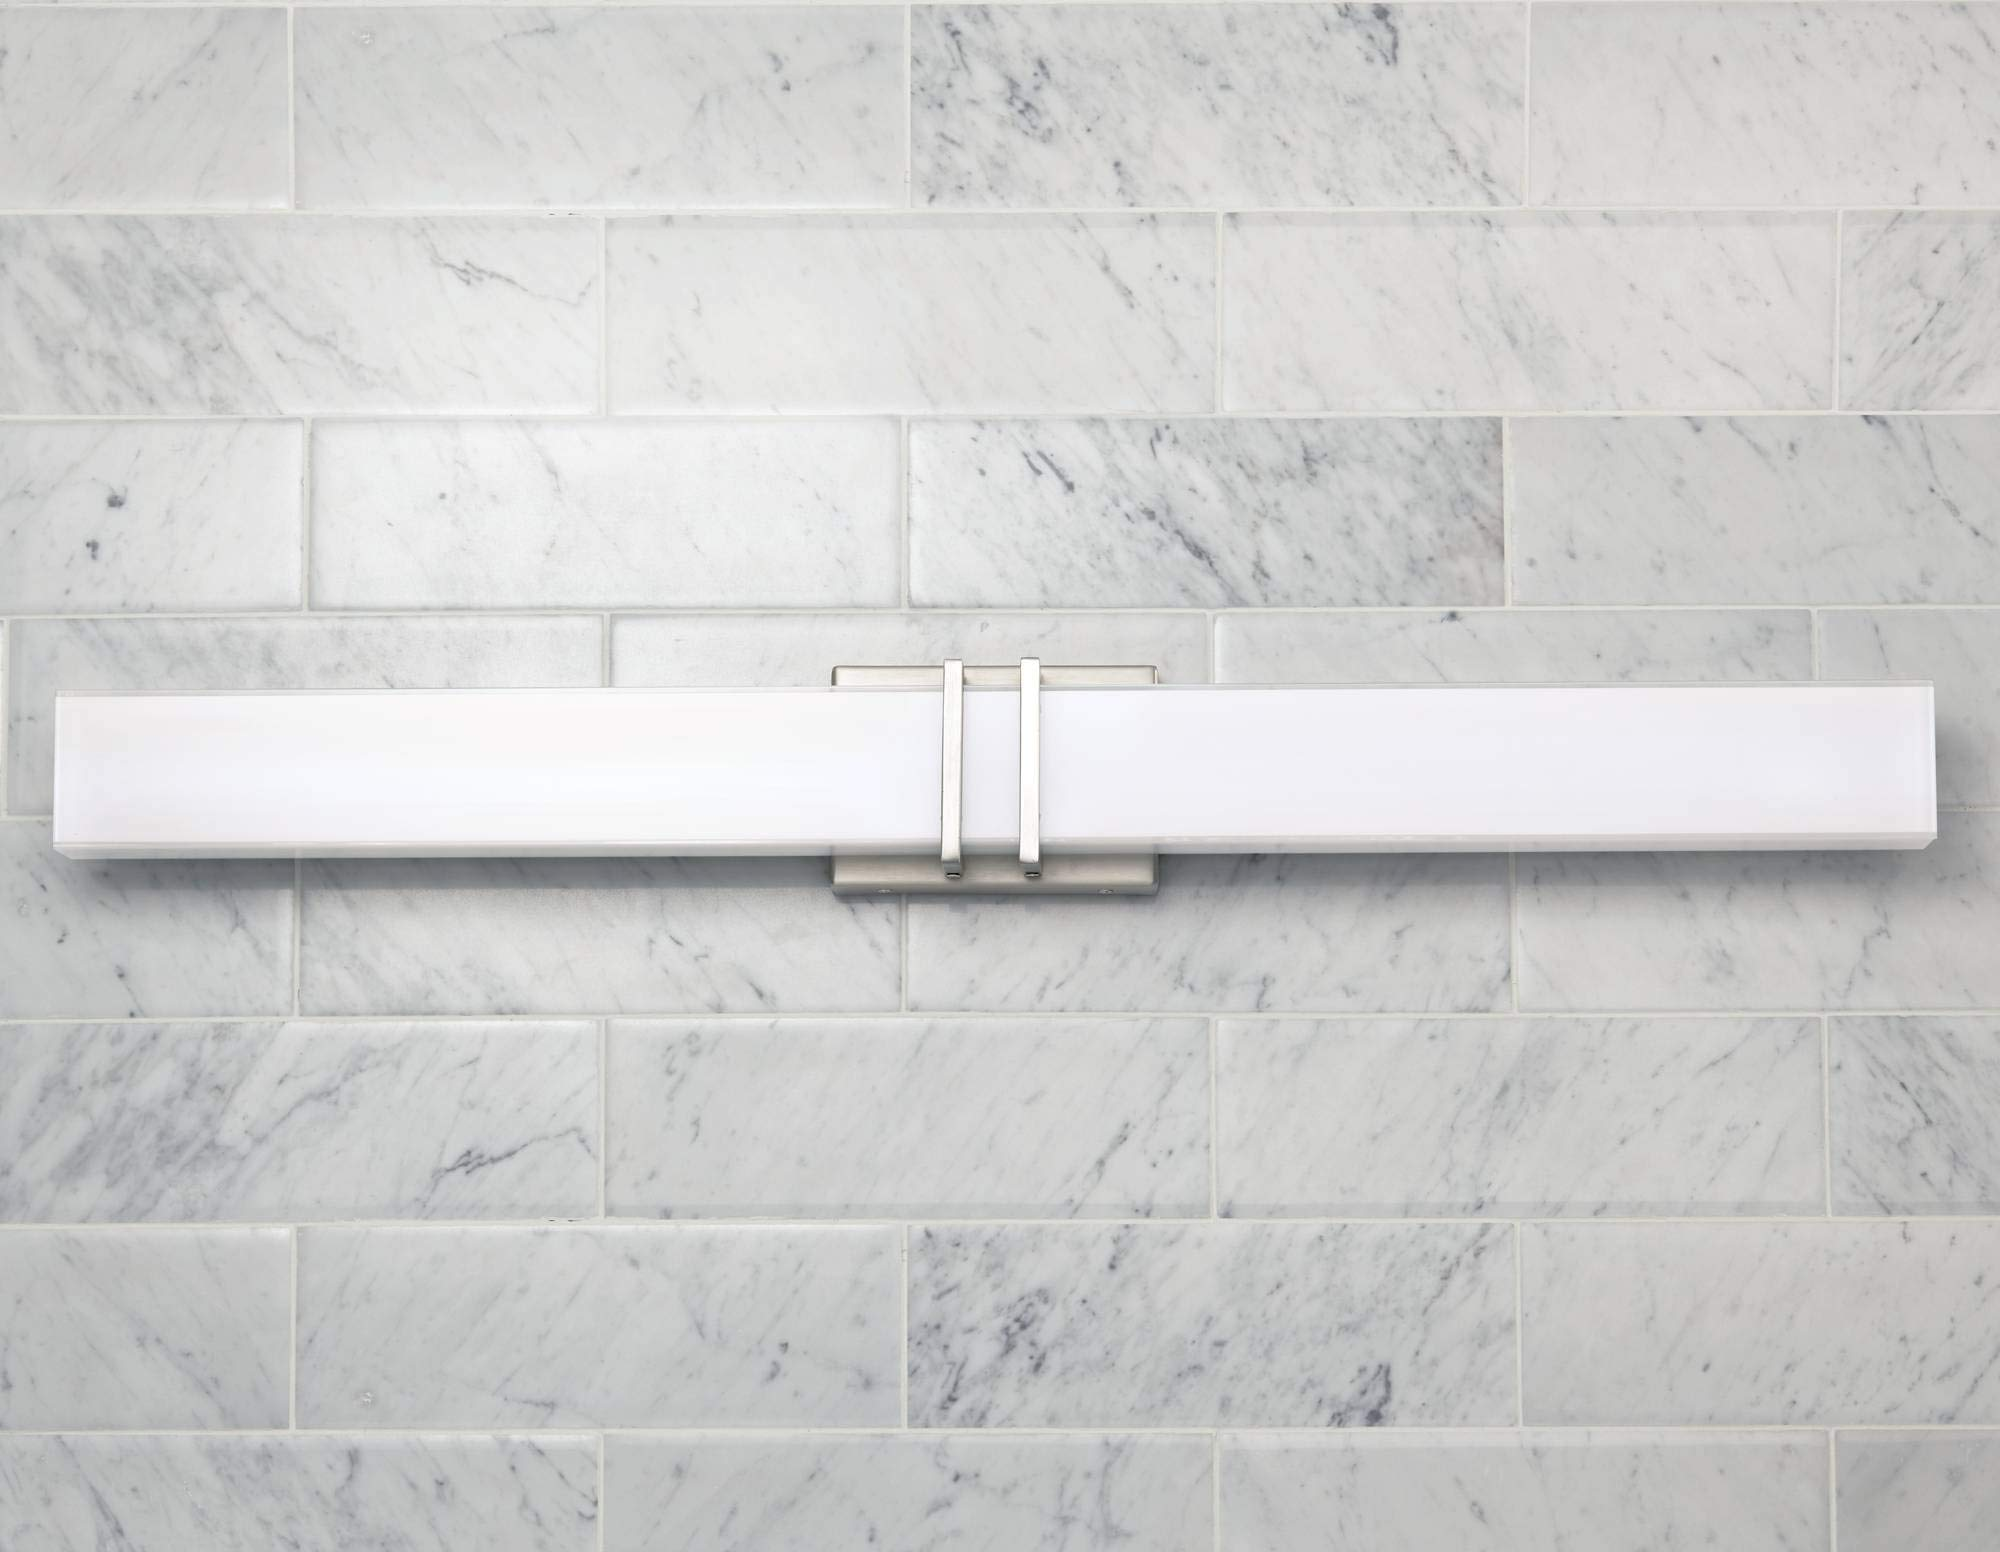 Exeter Modern Wall Light LED Brushed Nickel 36'' Vanity Fixture for Bathroom Over Mirror - Possini Euro Design